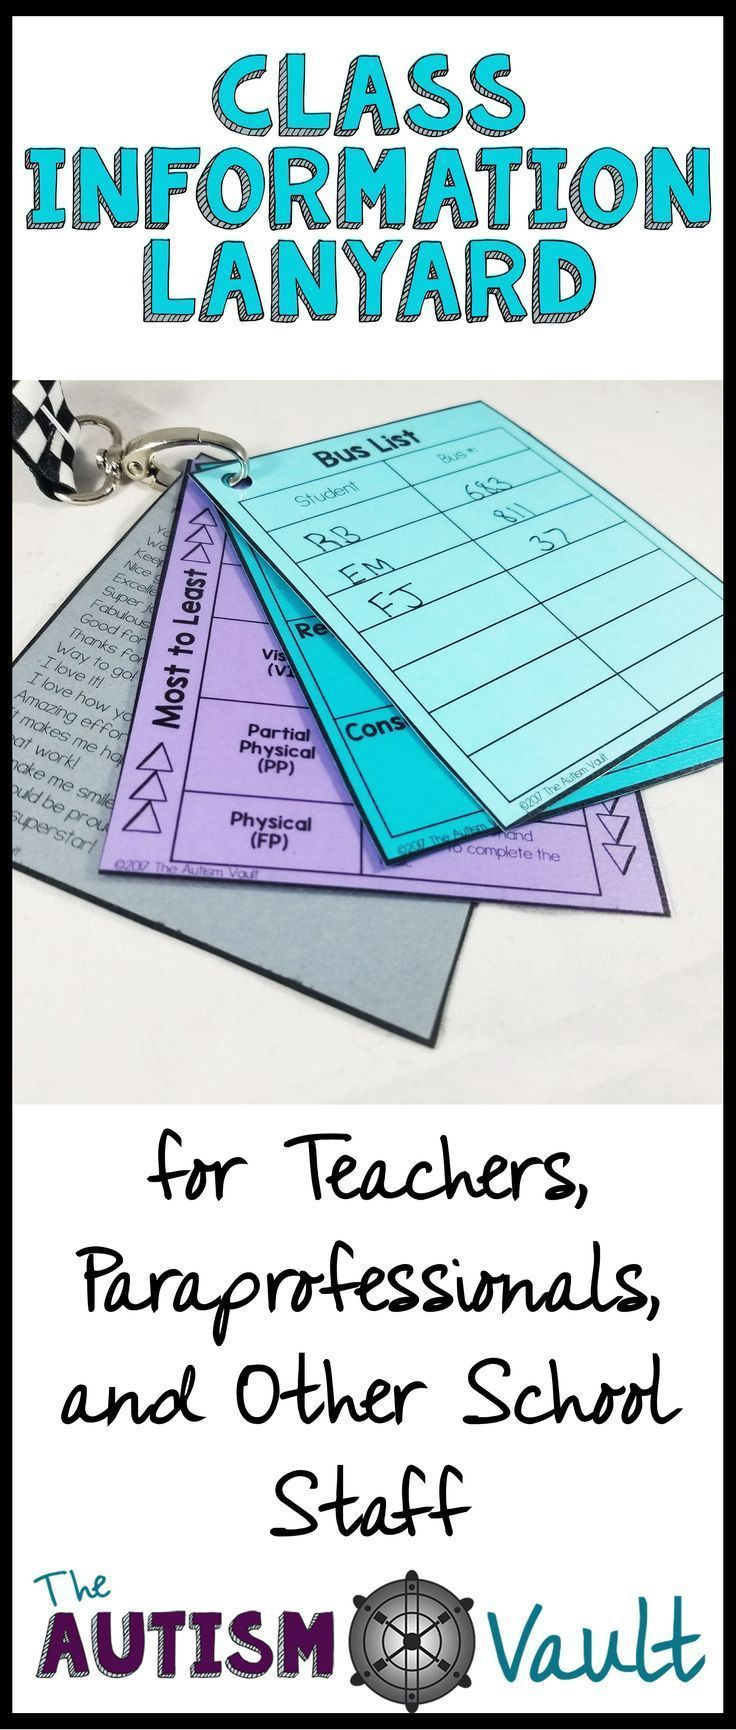 327 best sped images on Pinterest | Classroom ideas, Teaching ideas ...